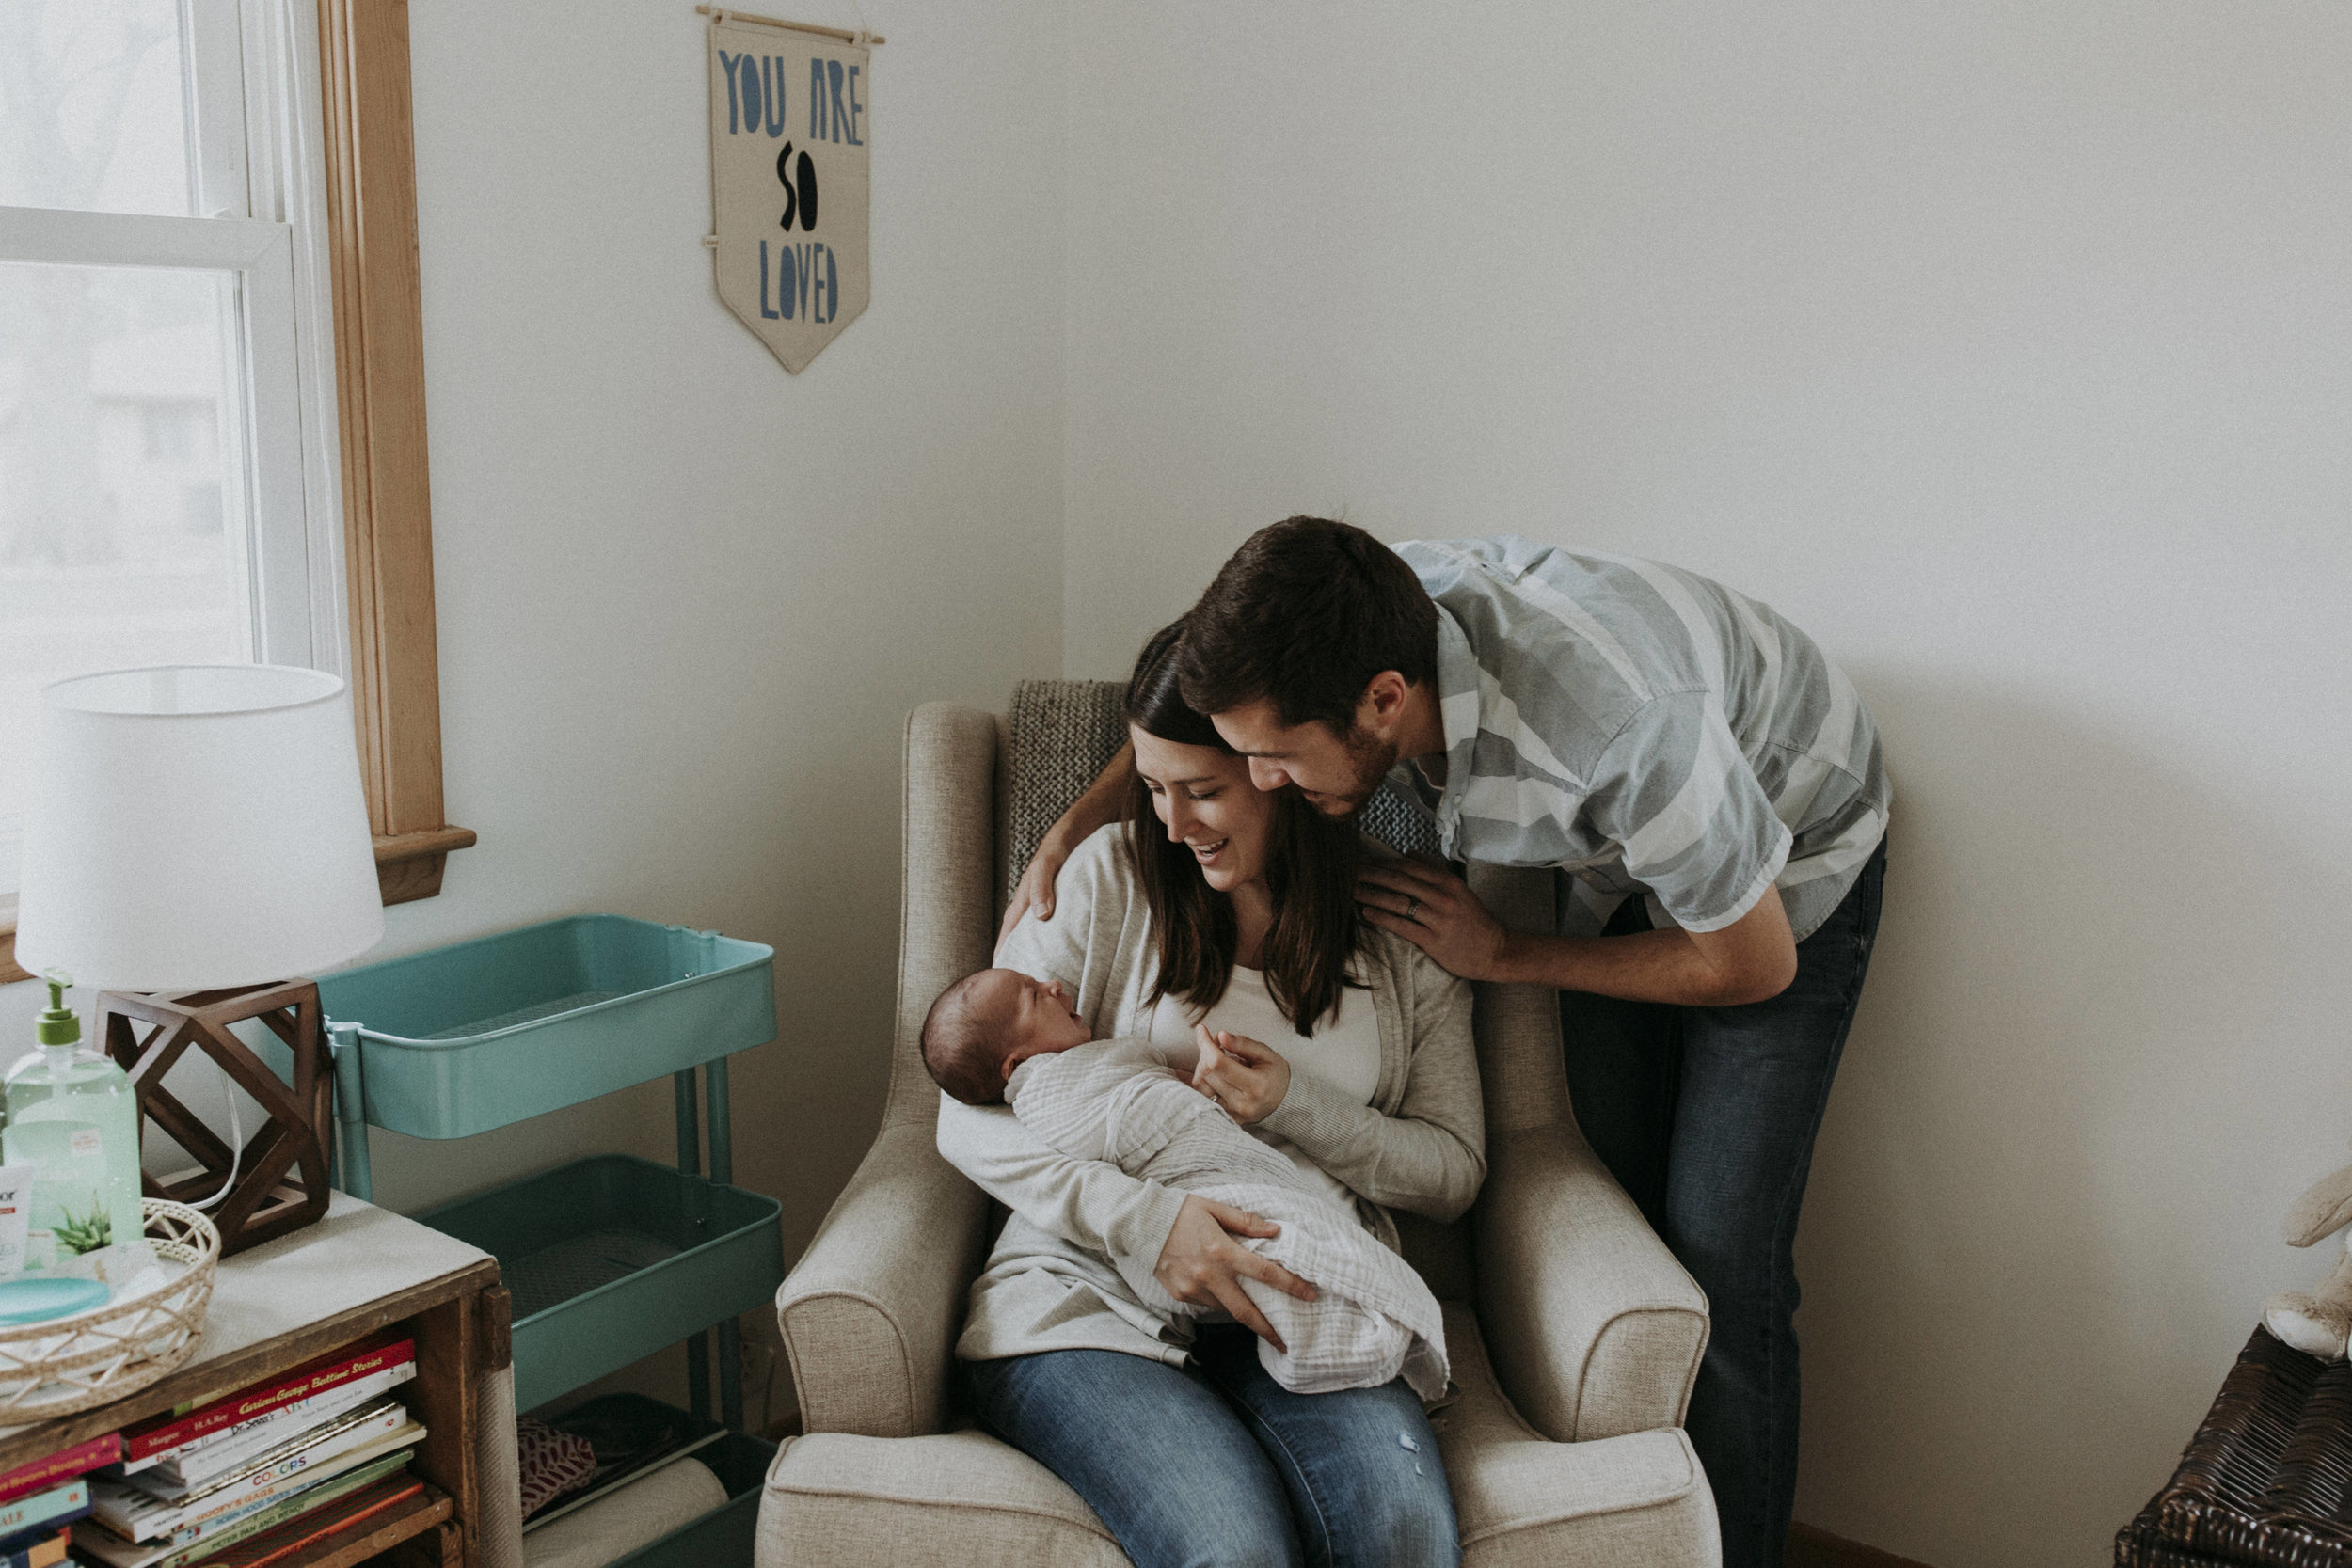 Our family photos with brand new Owen | taken by Brooke Confer Photography